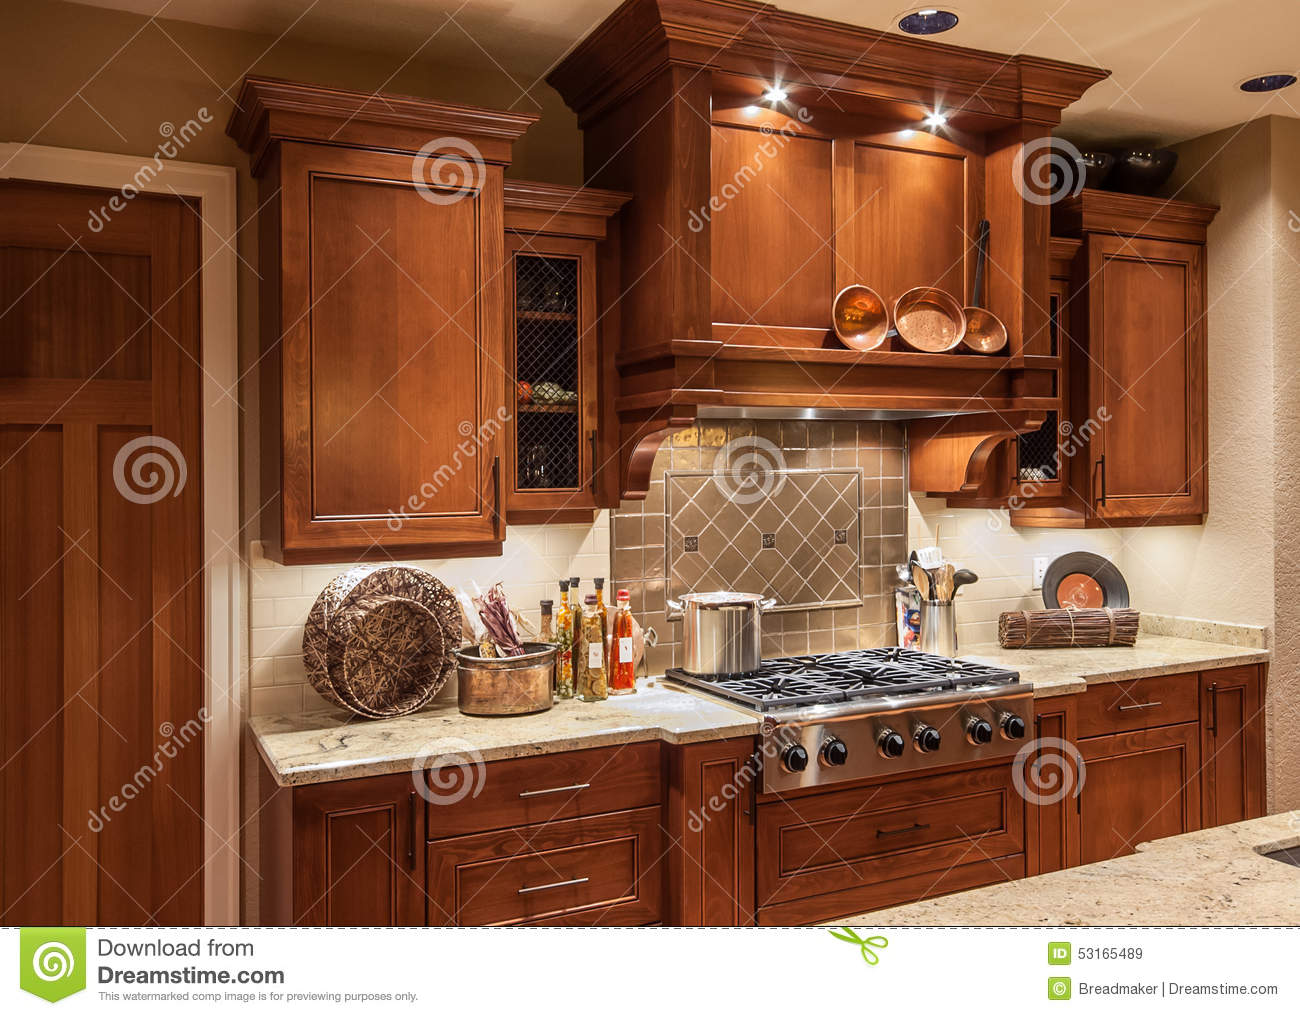 Home Kitchen Stove Top Range And Cabinets In New Luxury